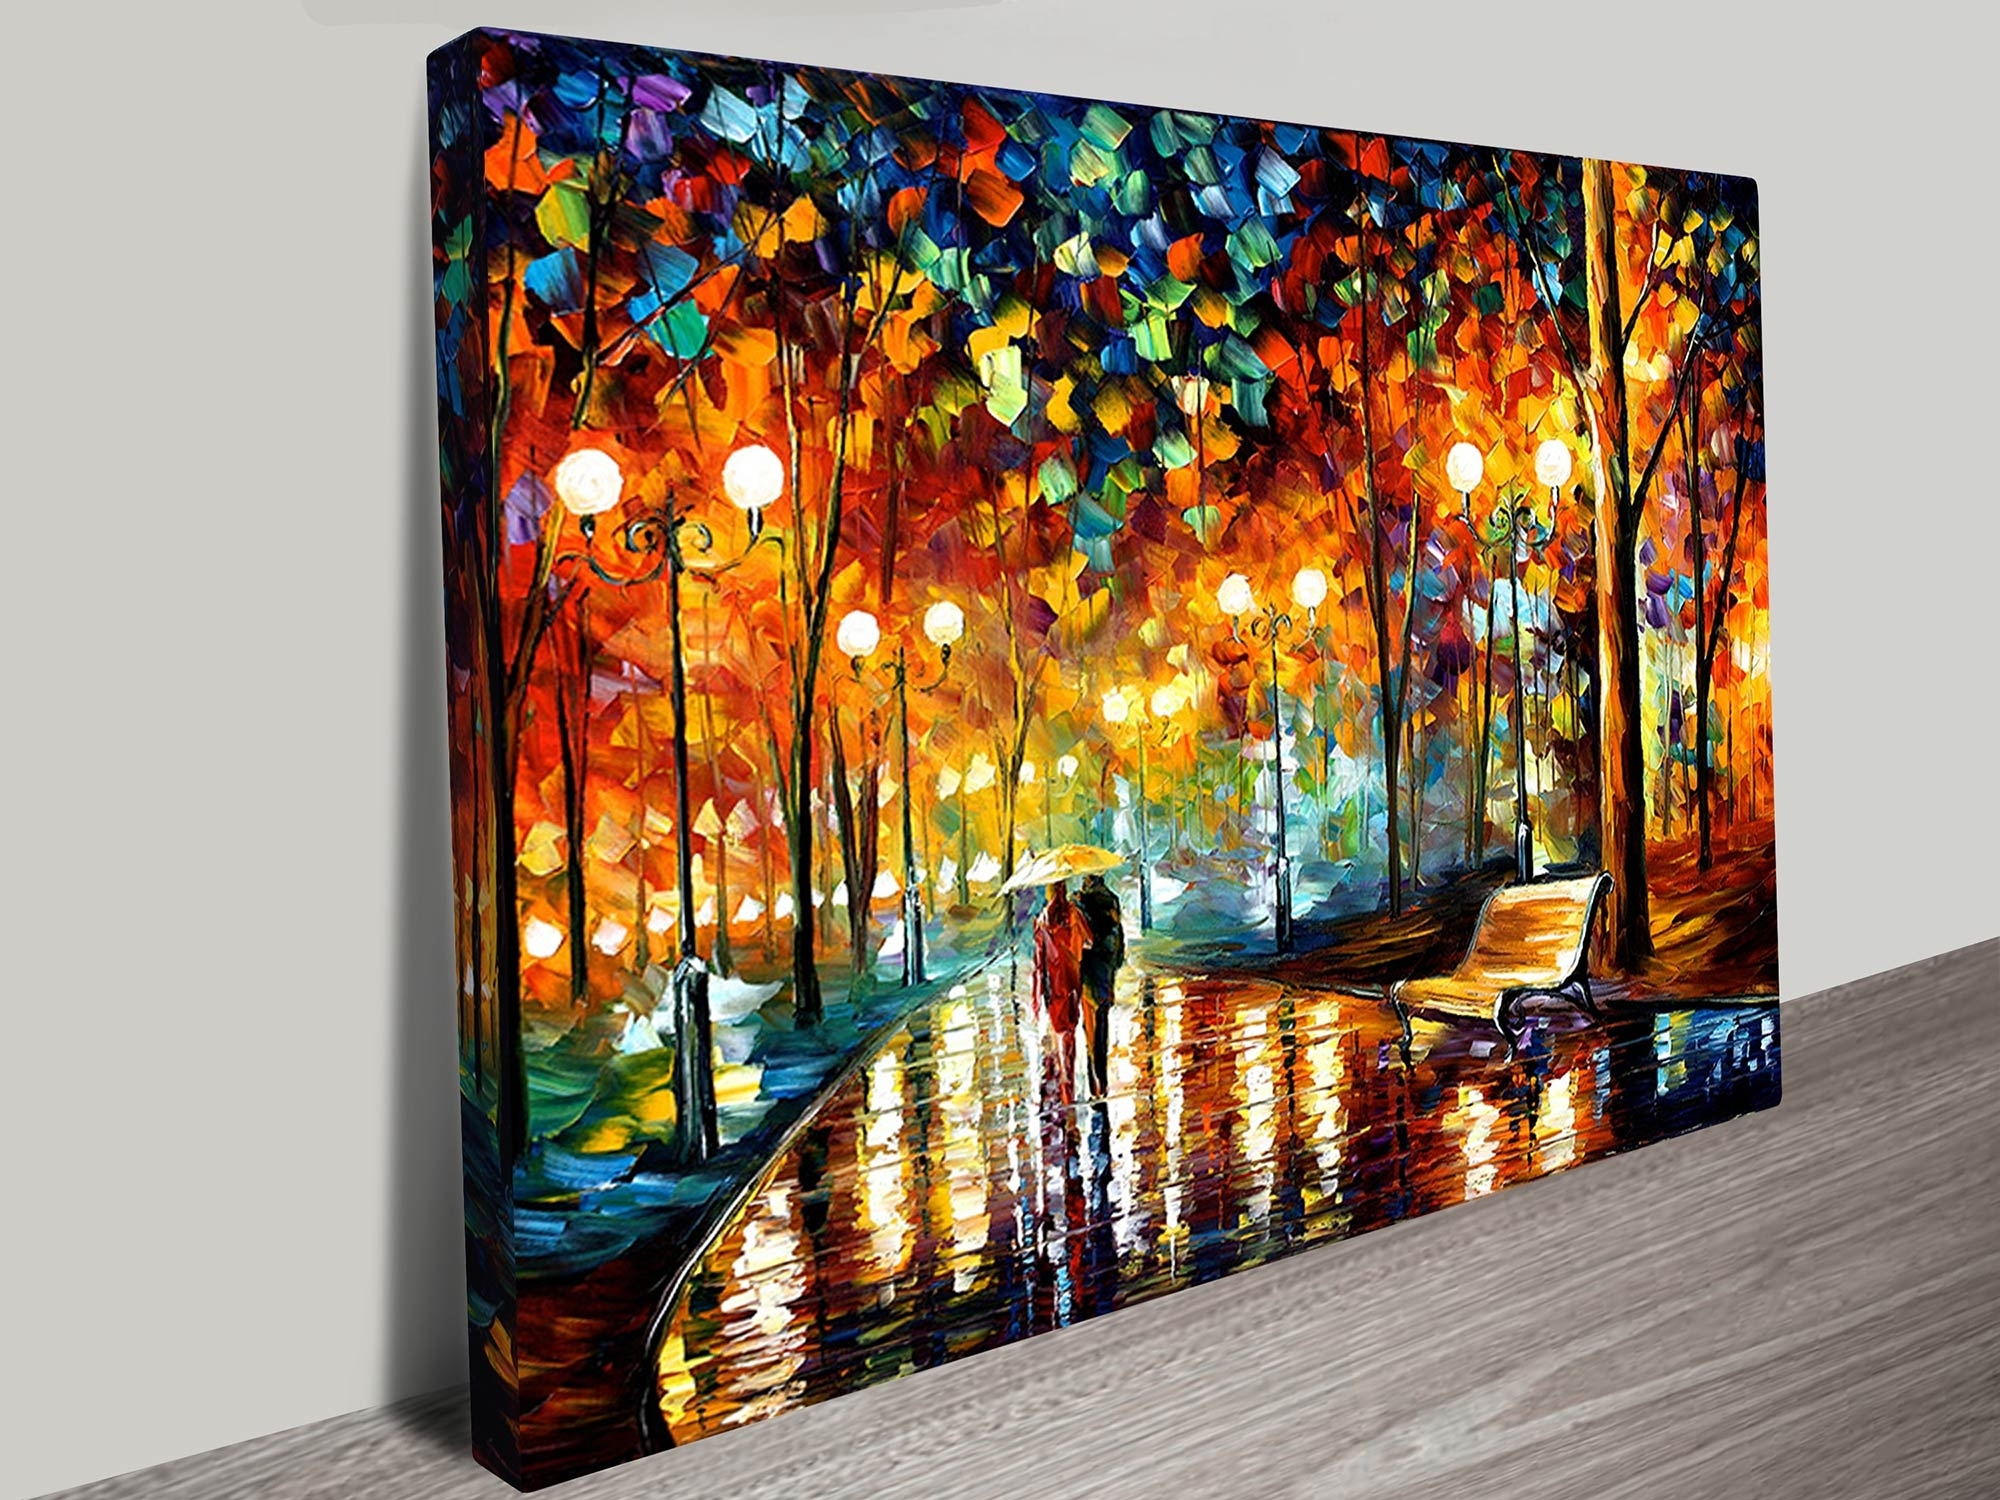 Most Popular Canvas Wall Art In Australia With Canvas Prints Australia (View 12 of 15)